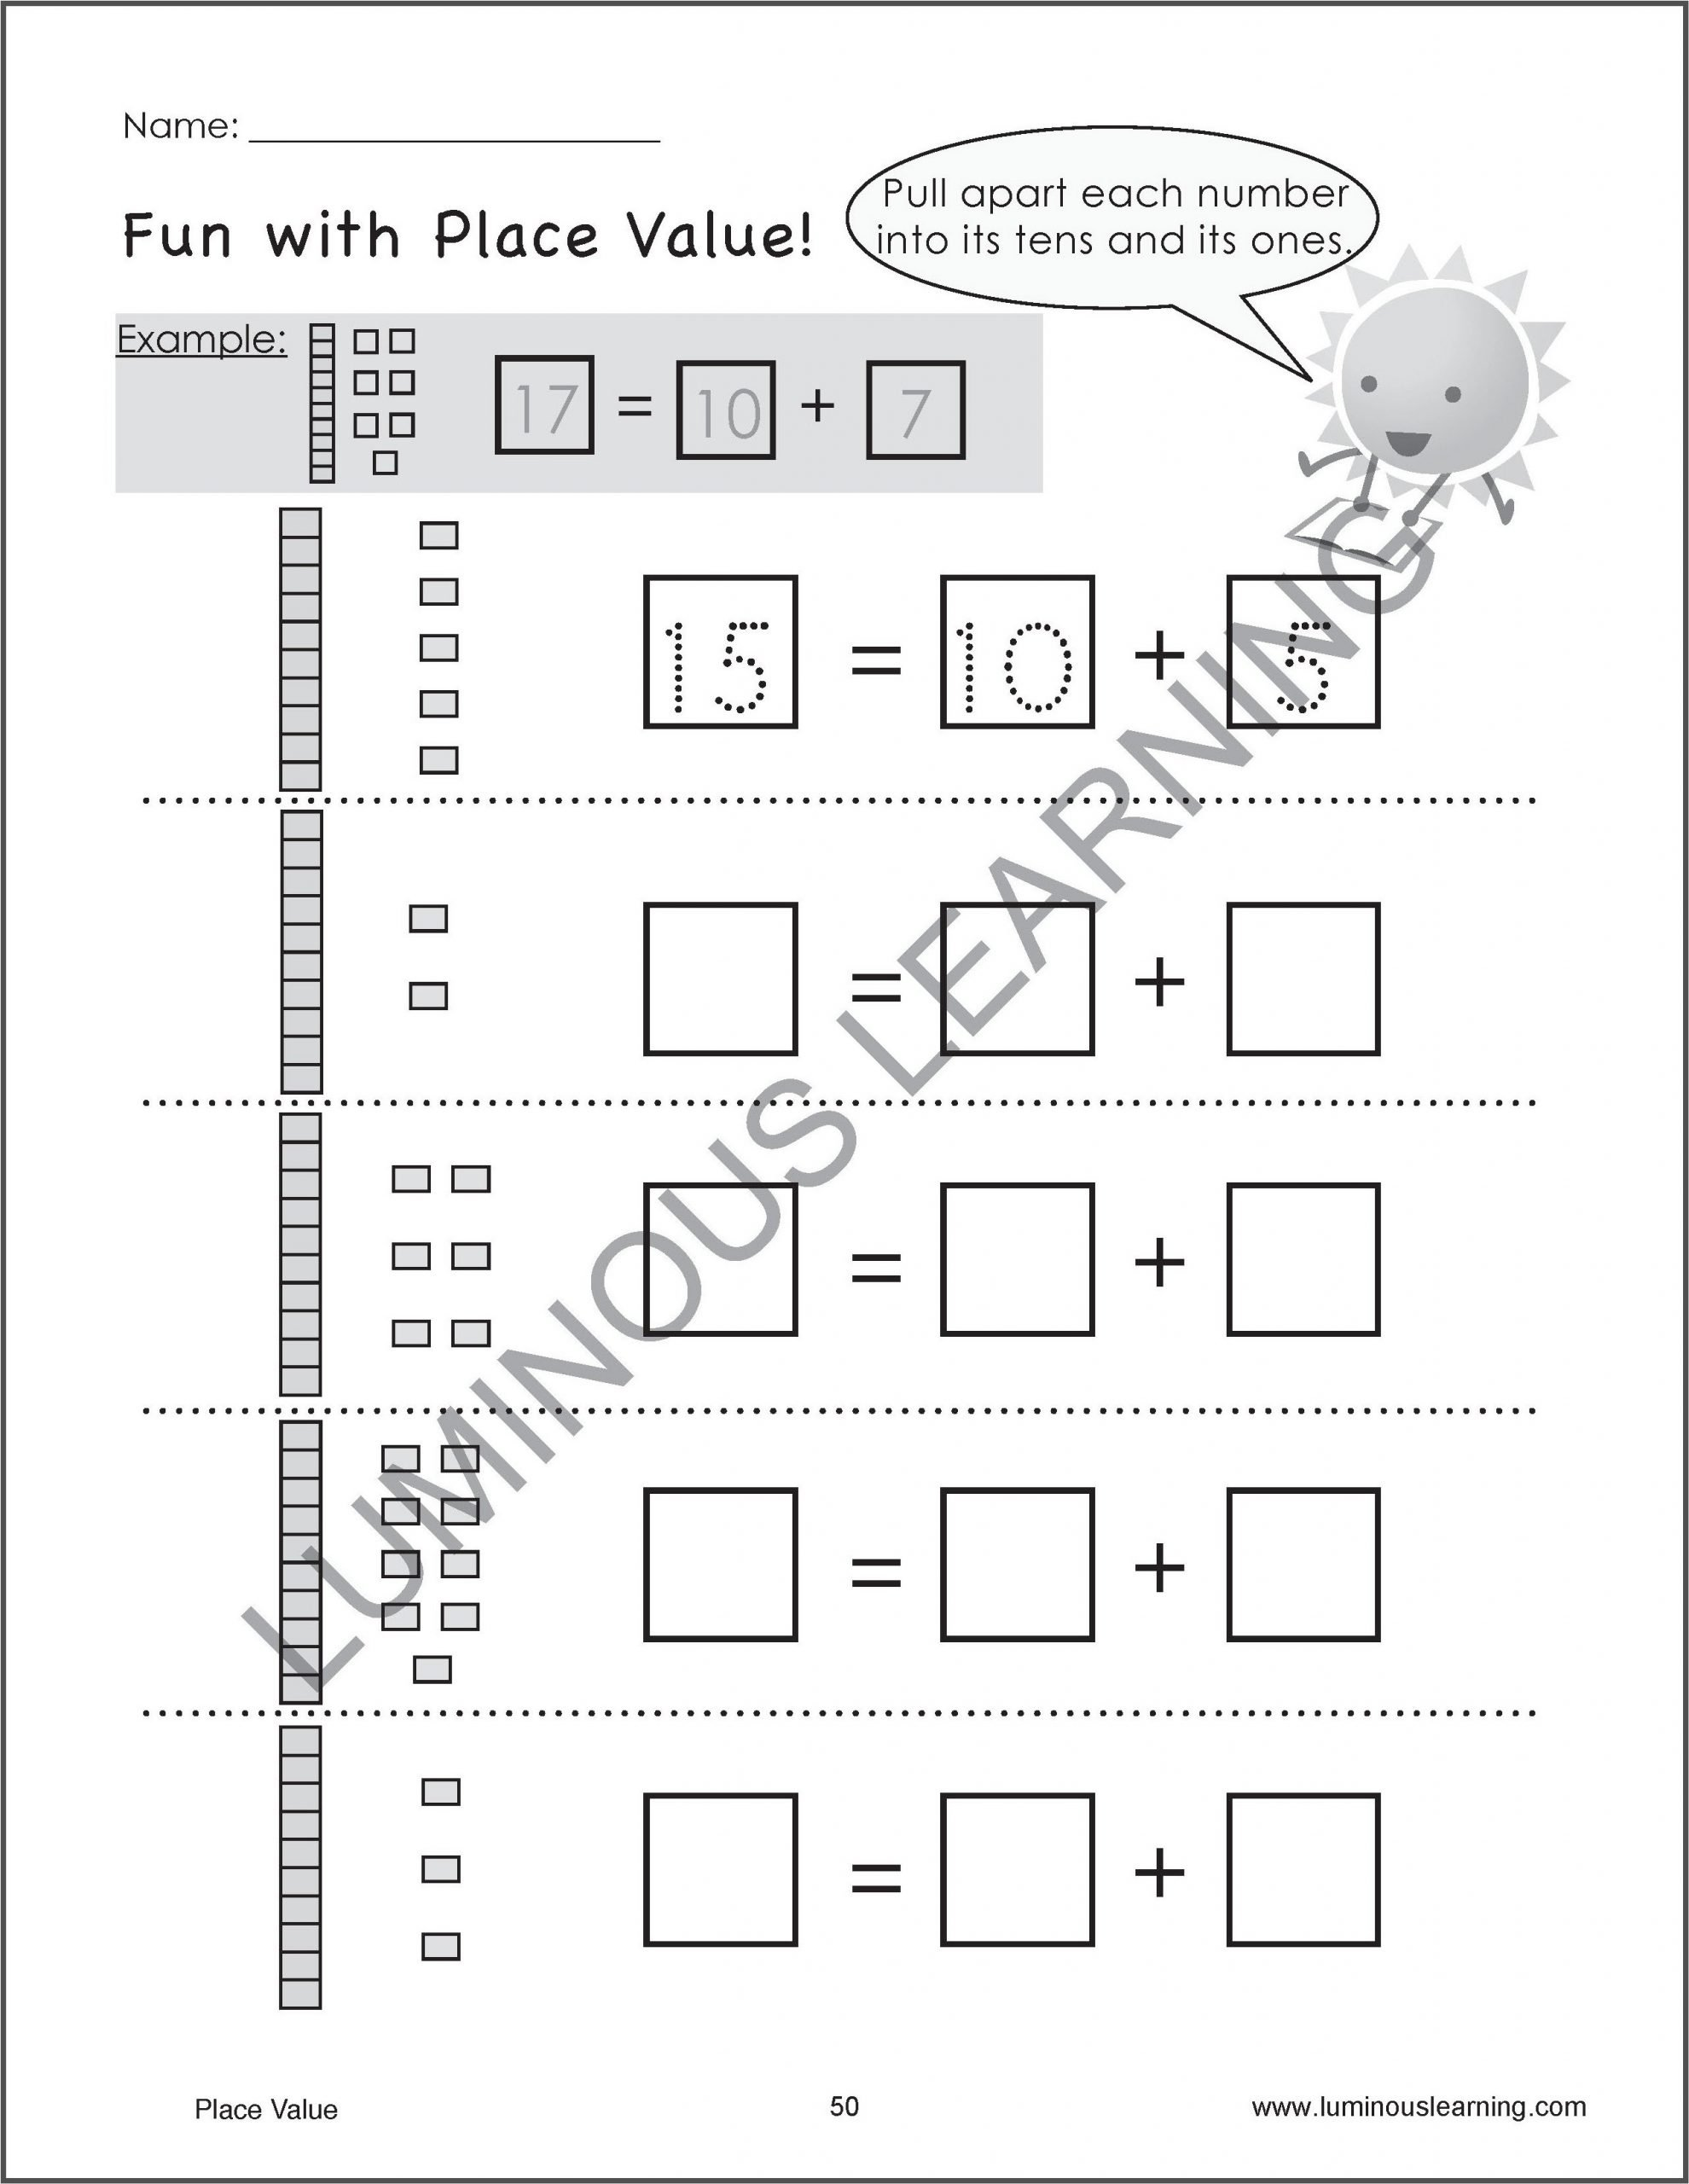 Kindergarten Place Value Worksheet Kindergarten and Grade 1 Number Sense and Place Value Workbook